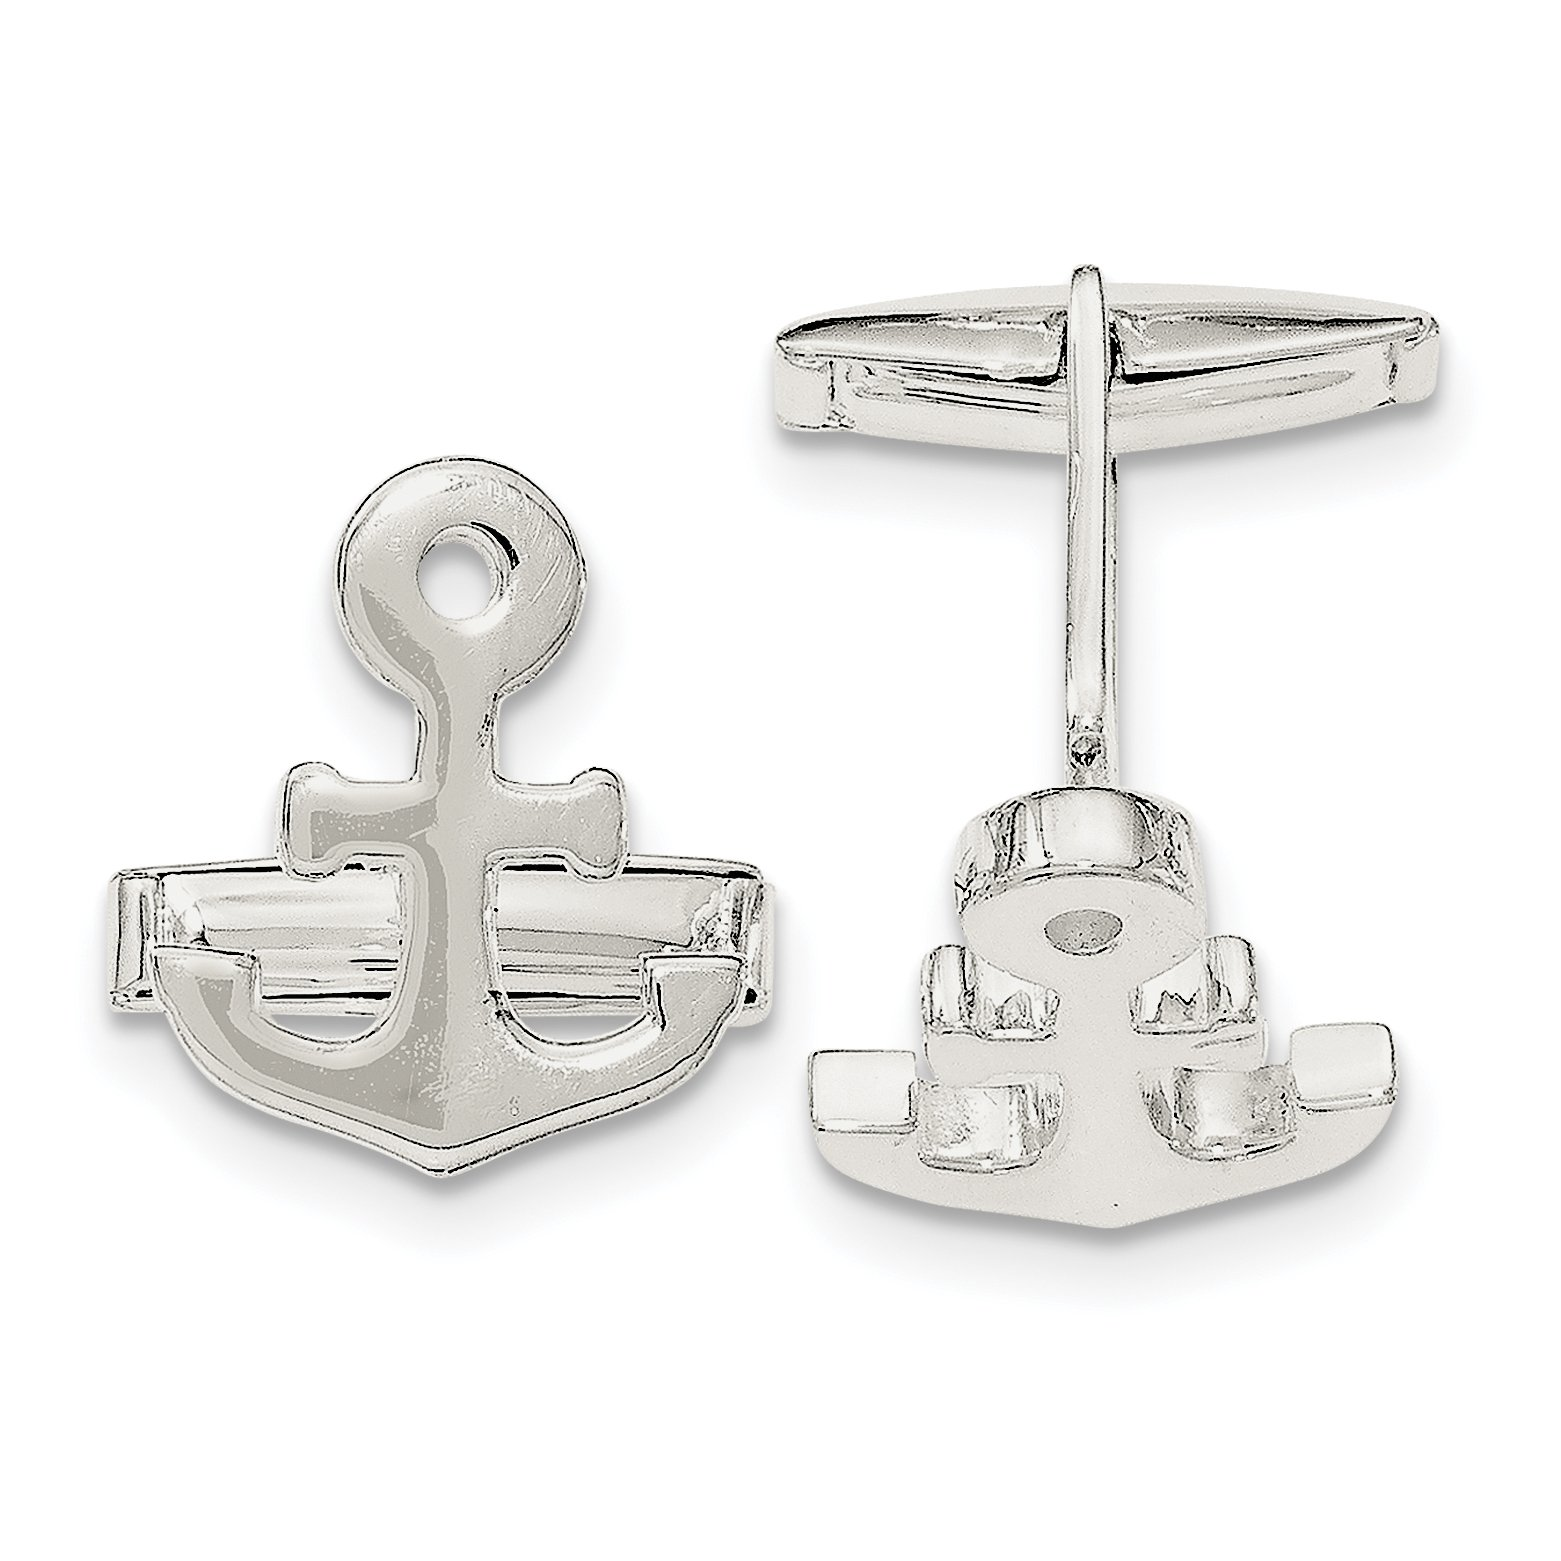 ICE CARATS 925 Sterling Silver Nautical Anchor Ship Wheel Mariners Cuff Links Mens Cufflinks Link Fine Jewelry Dad Mens Gift Set